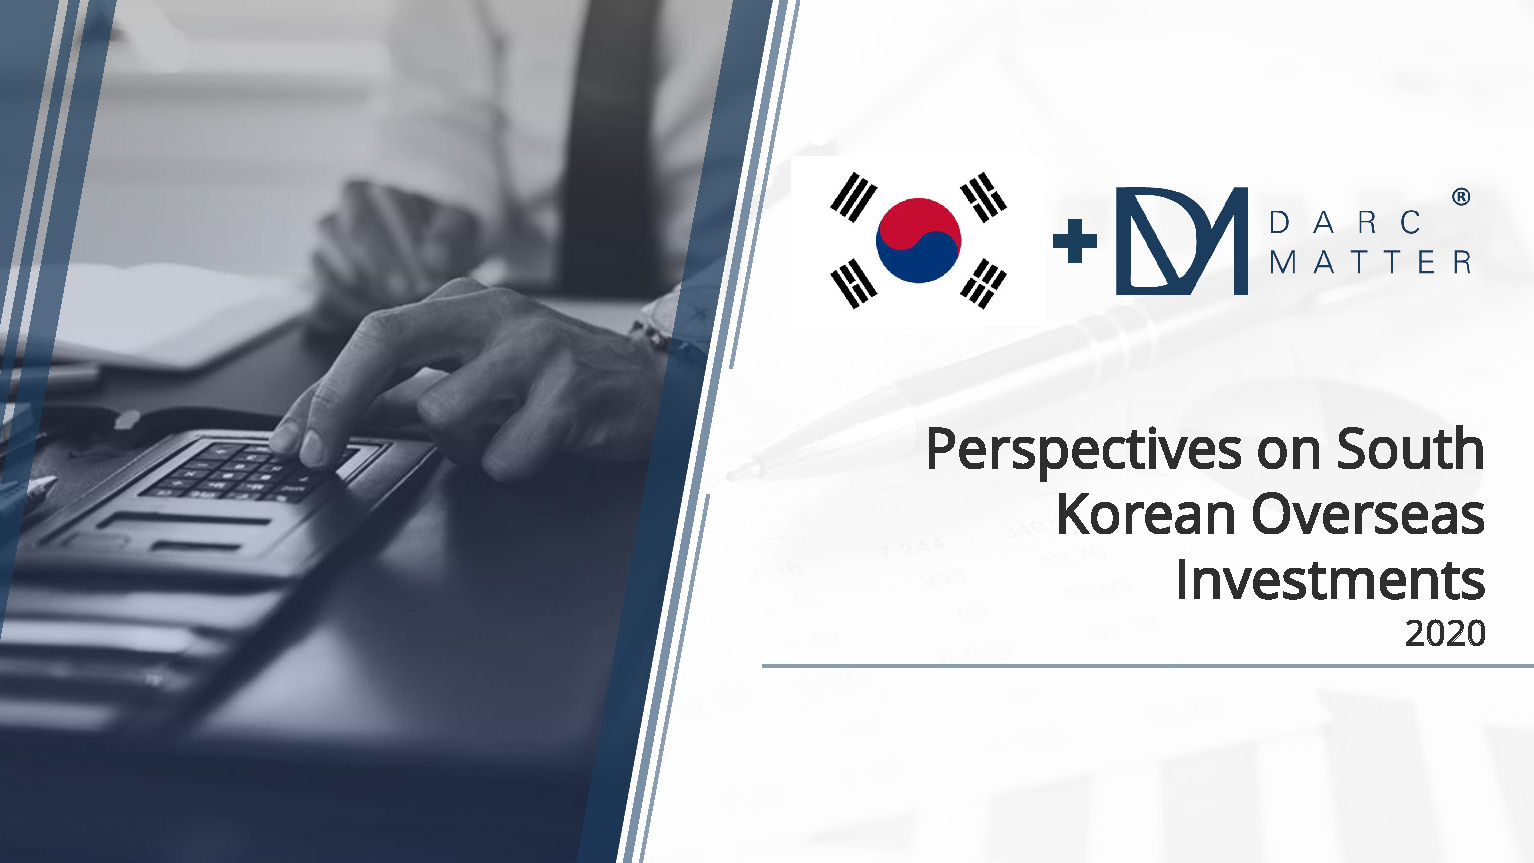 DarcMatter - Perspectives on South Korean Overseas Investments 2020